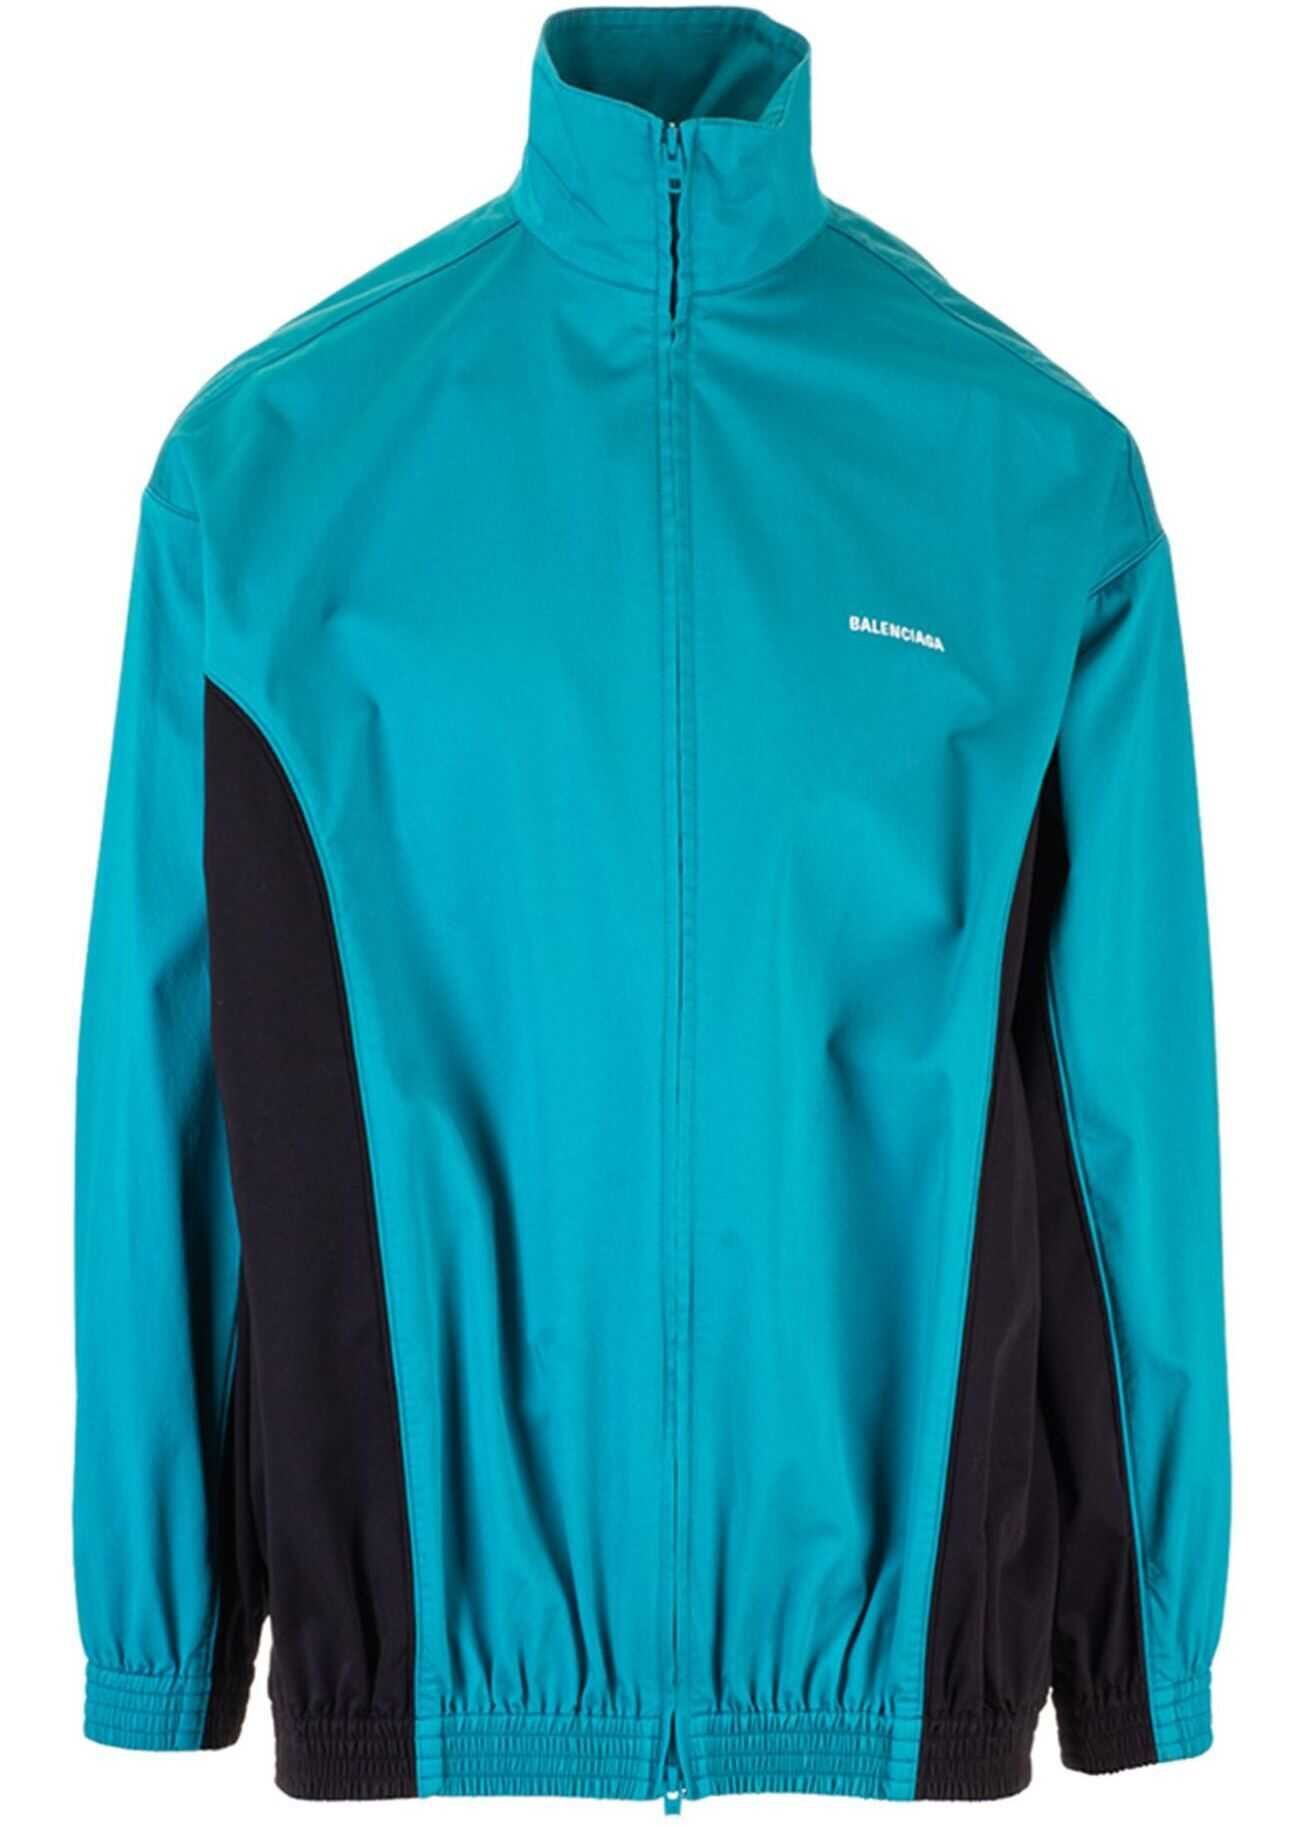 Zip-Up Jacket In Turquoise And Black